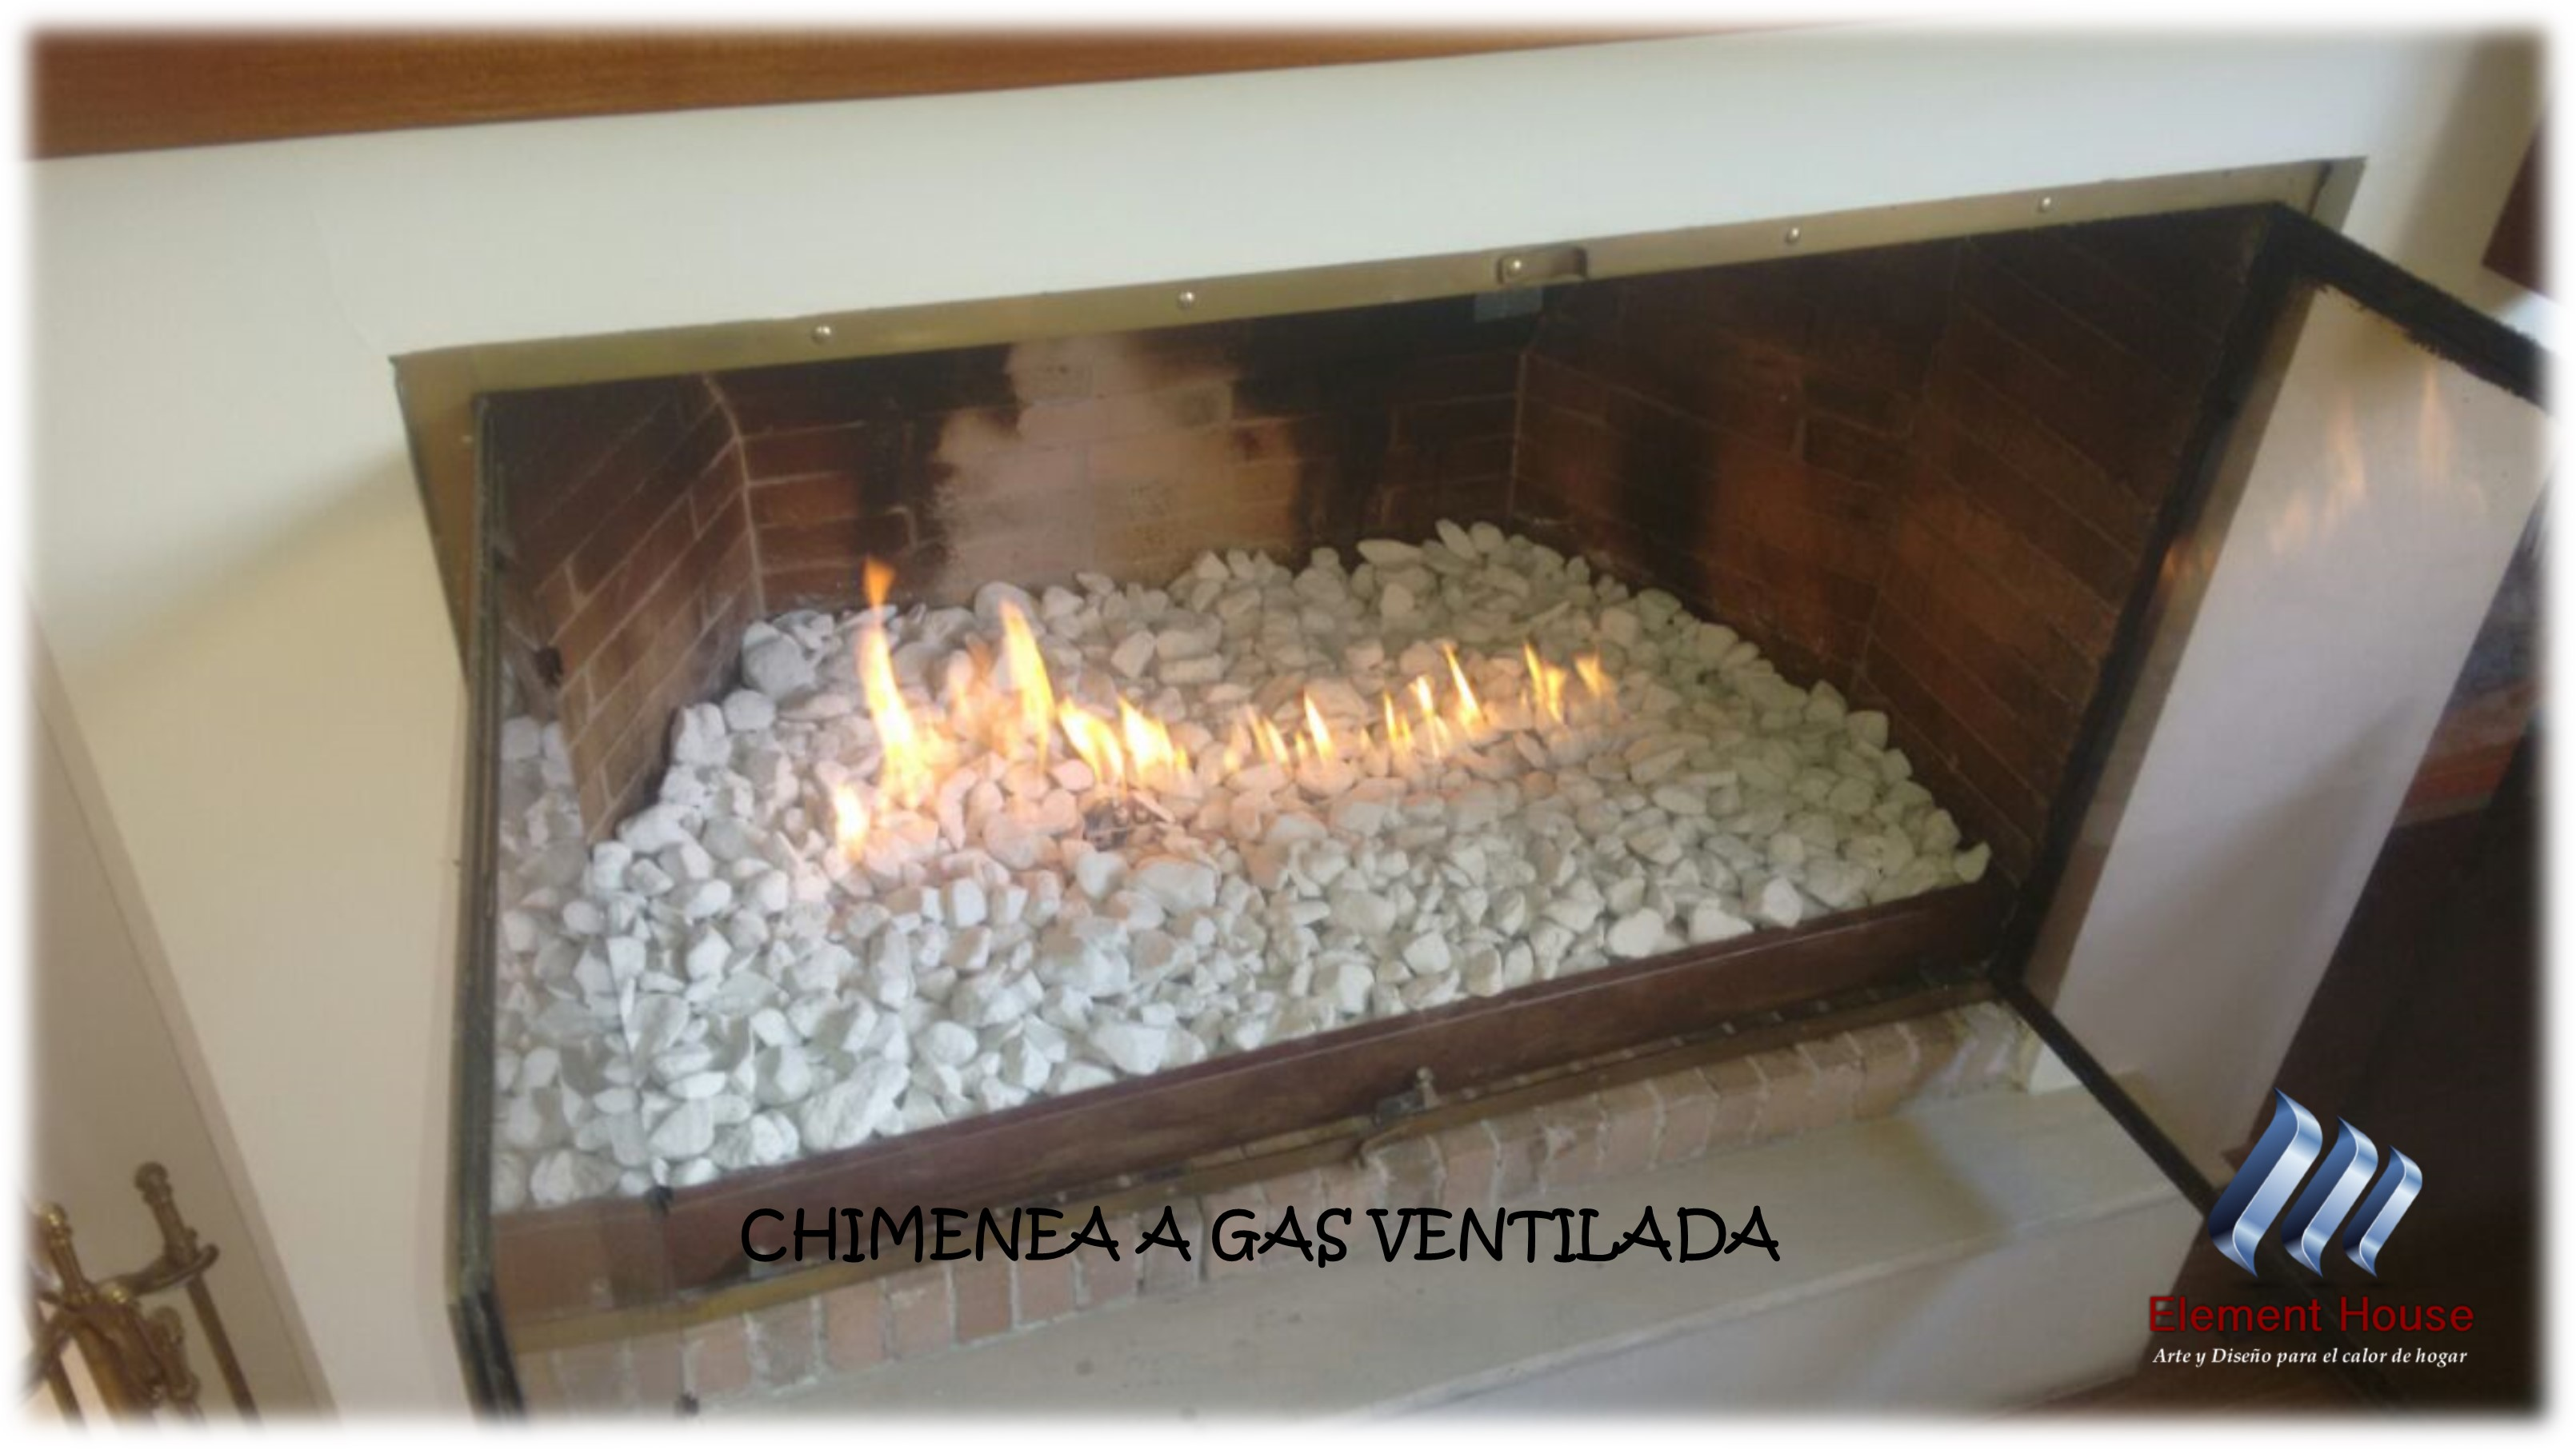 CHIMENEAS A GAS ELEMENT HOUSE (32)